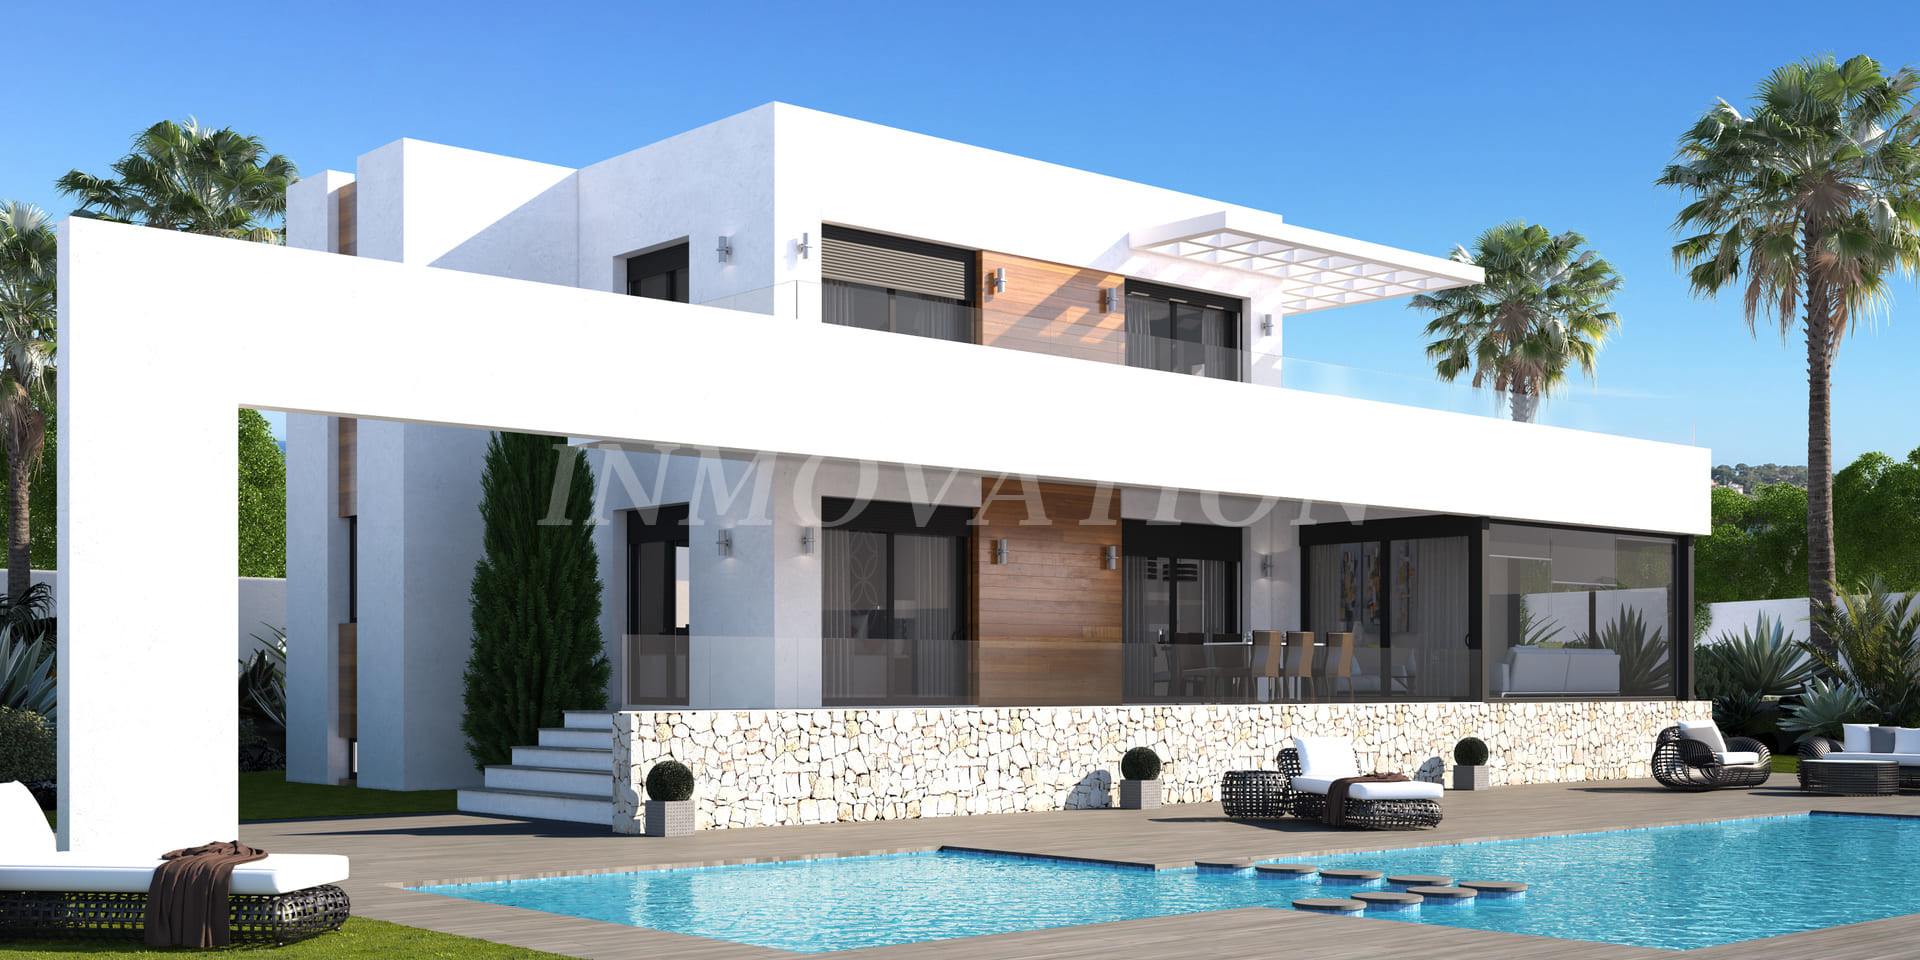 New Modern Villa Design in Denia